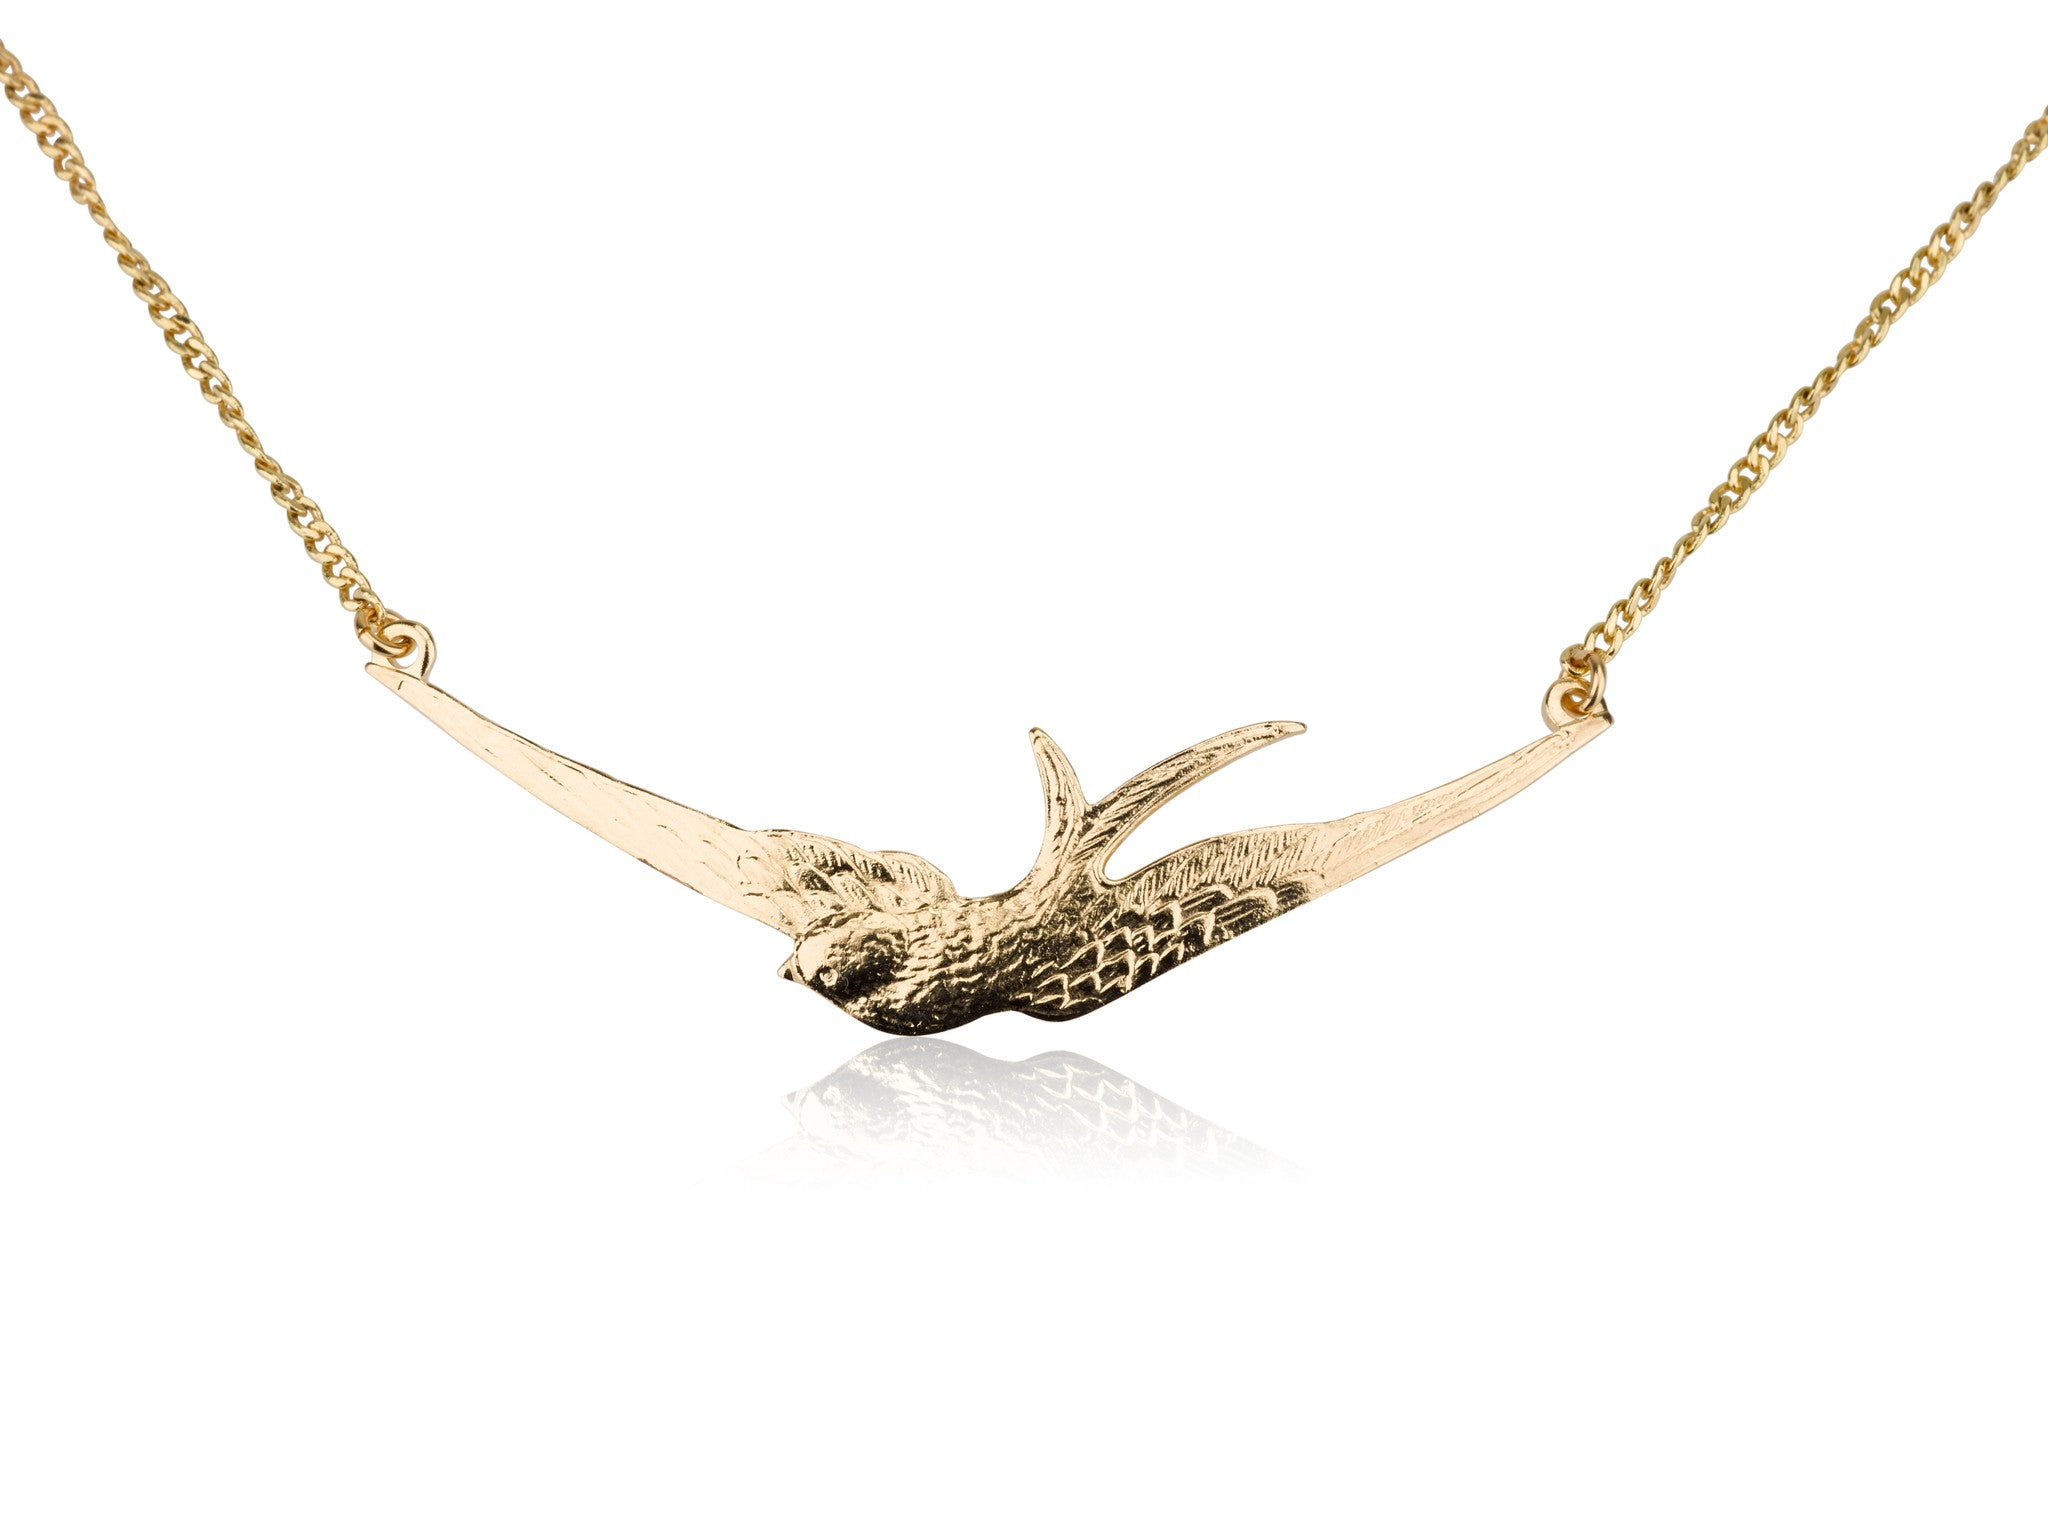 Necklaces - Big Free Bird & Helen Chain Necklace